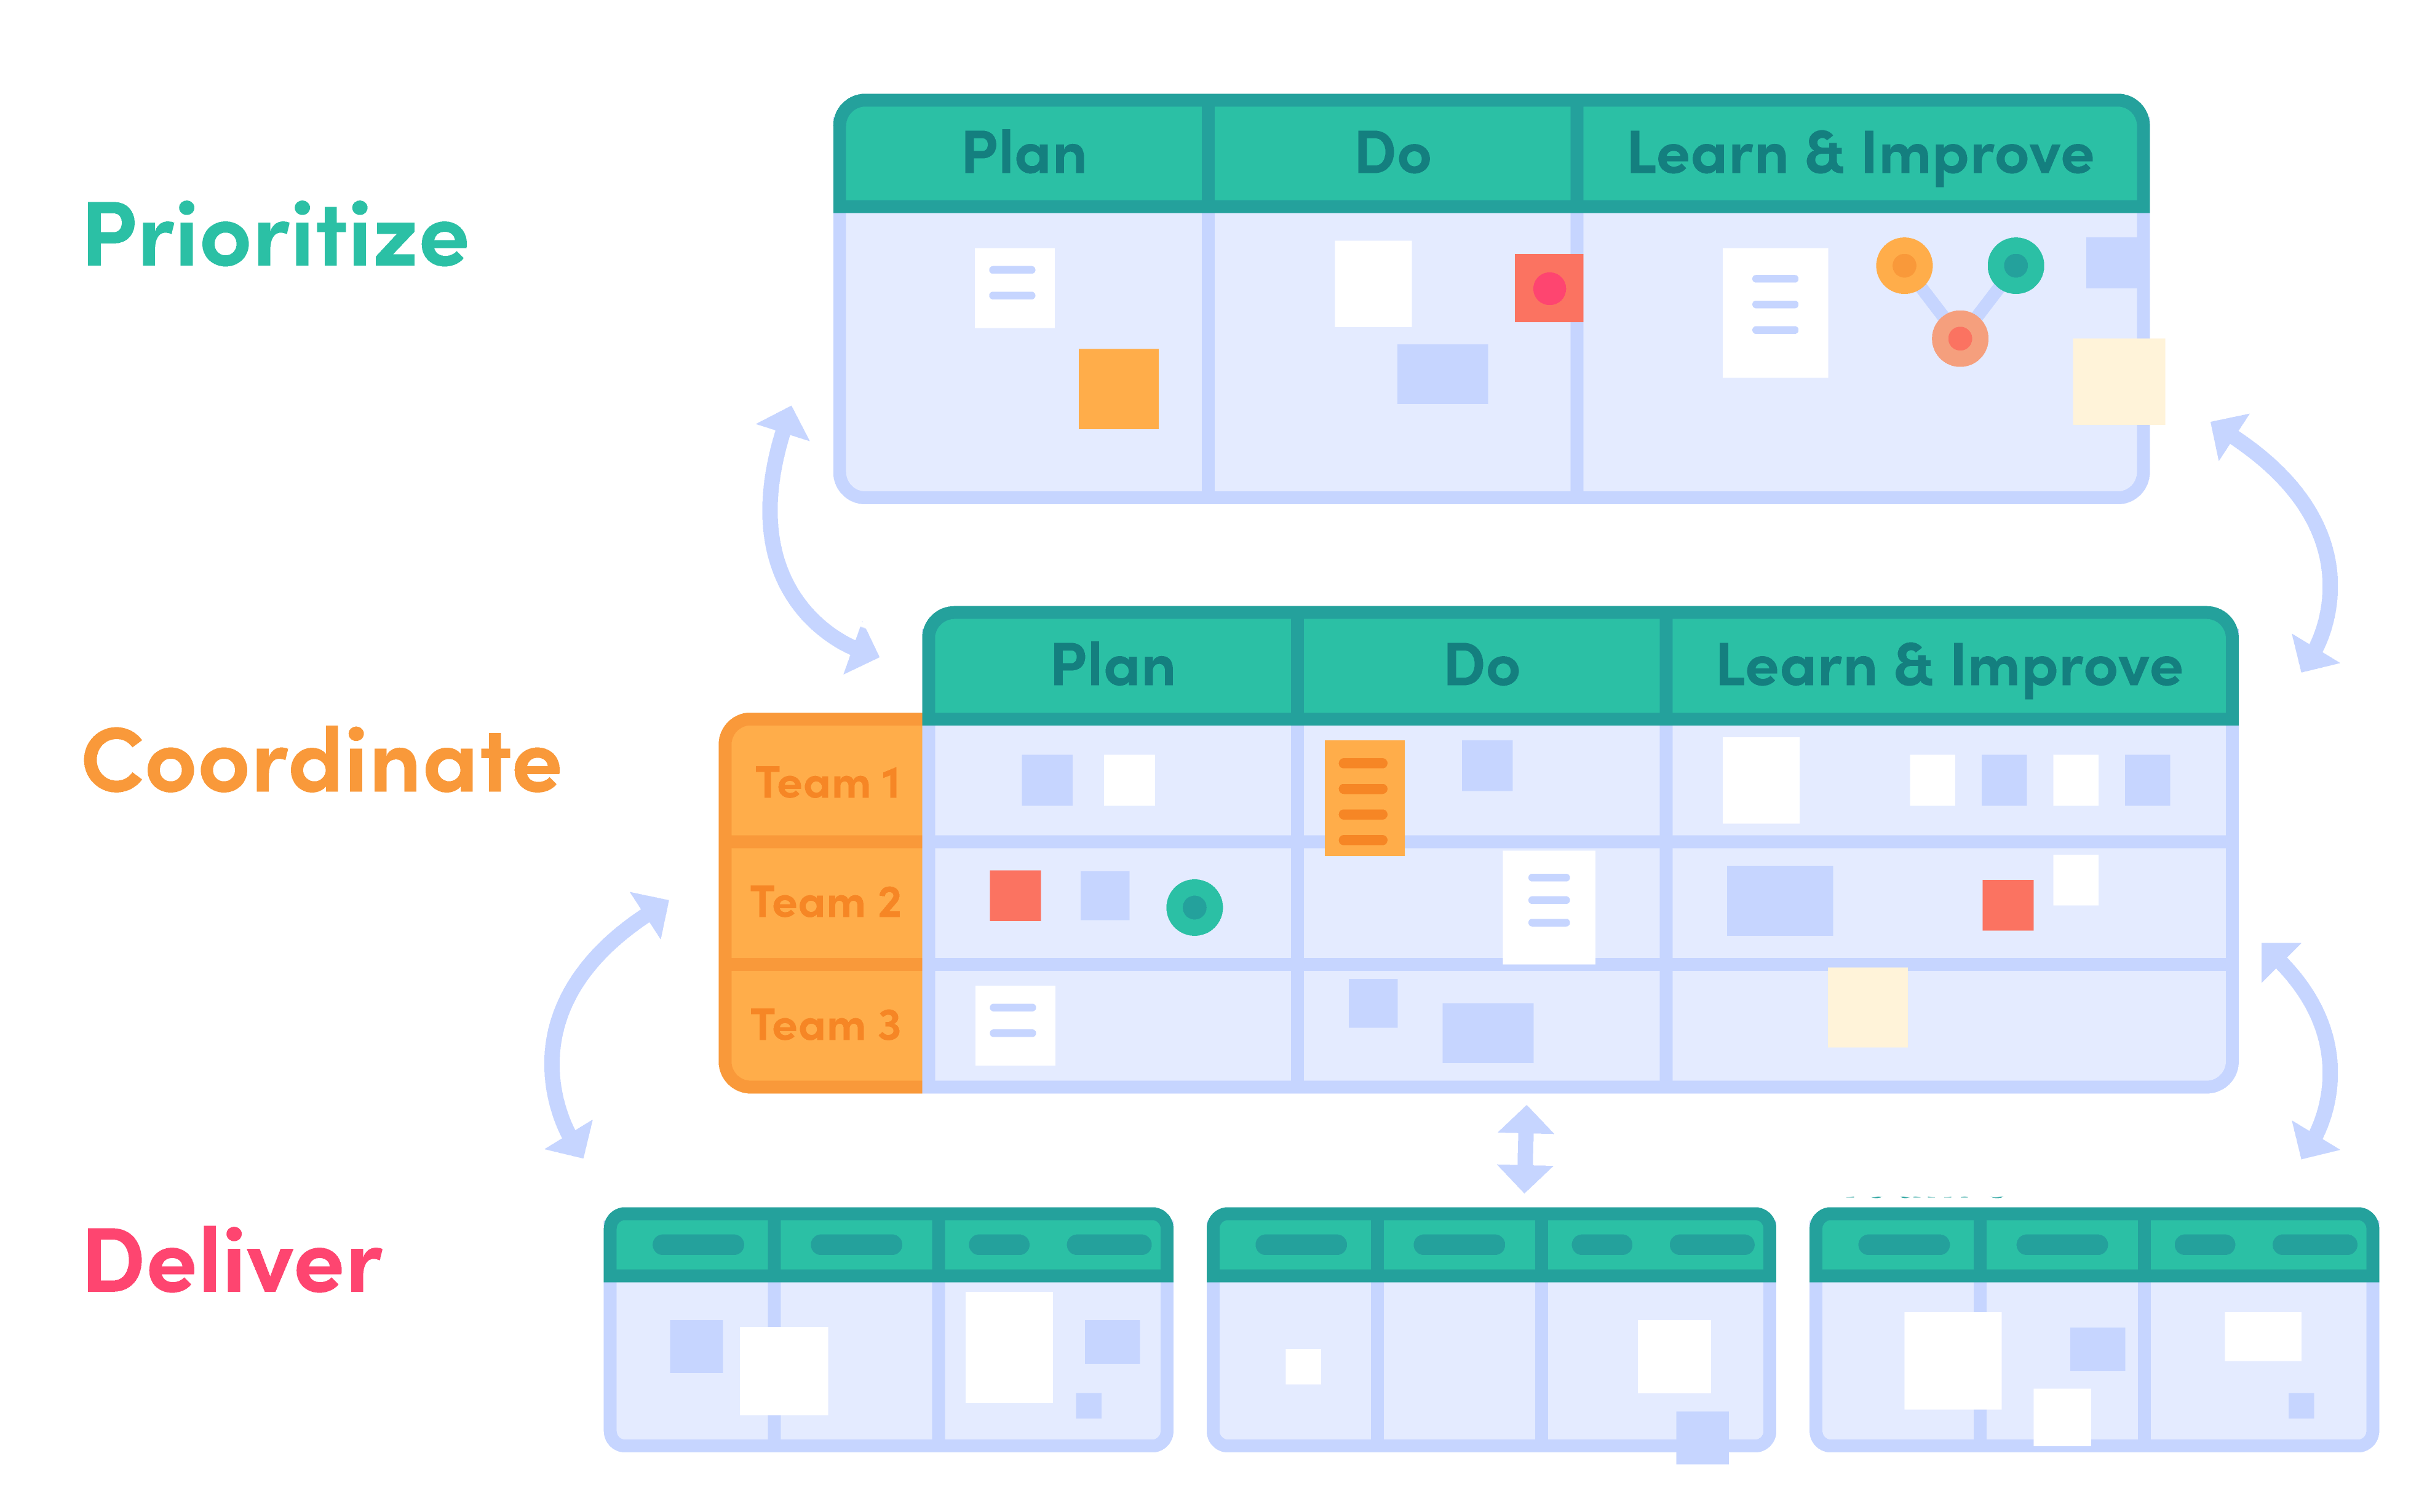 Spot illustration on how to improve work systems